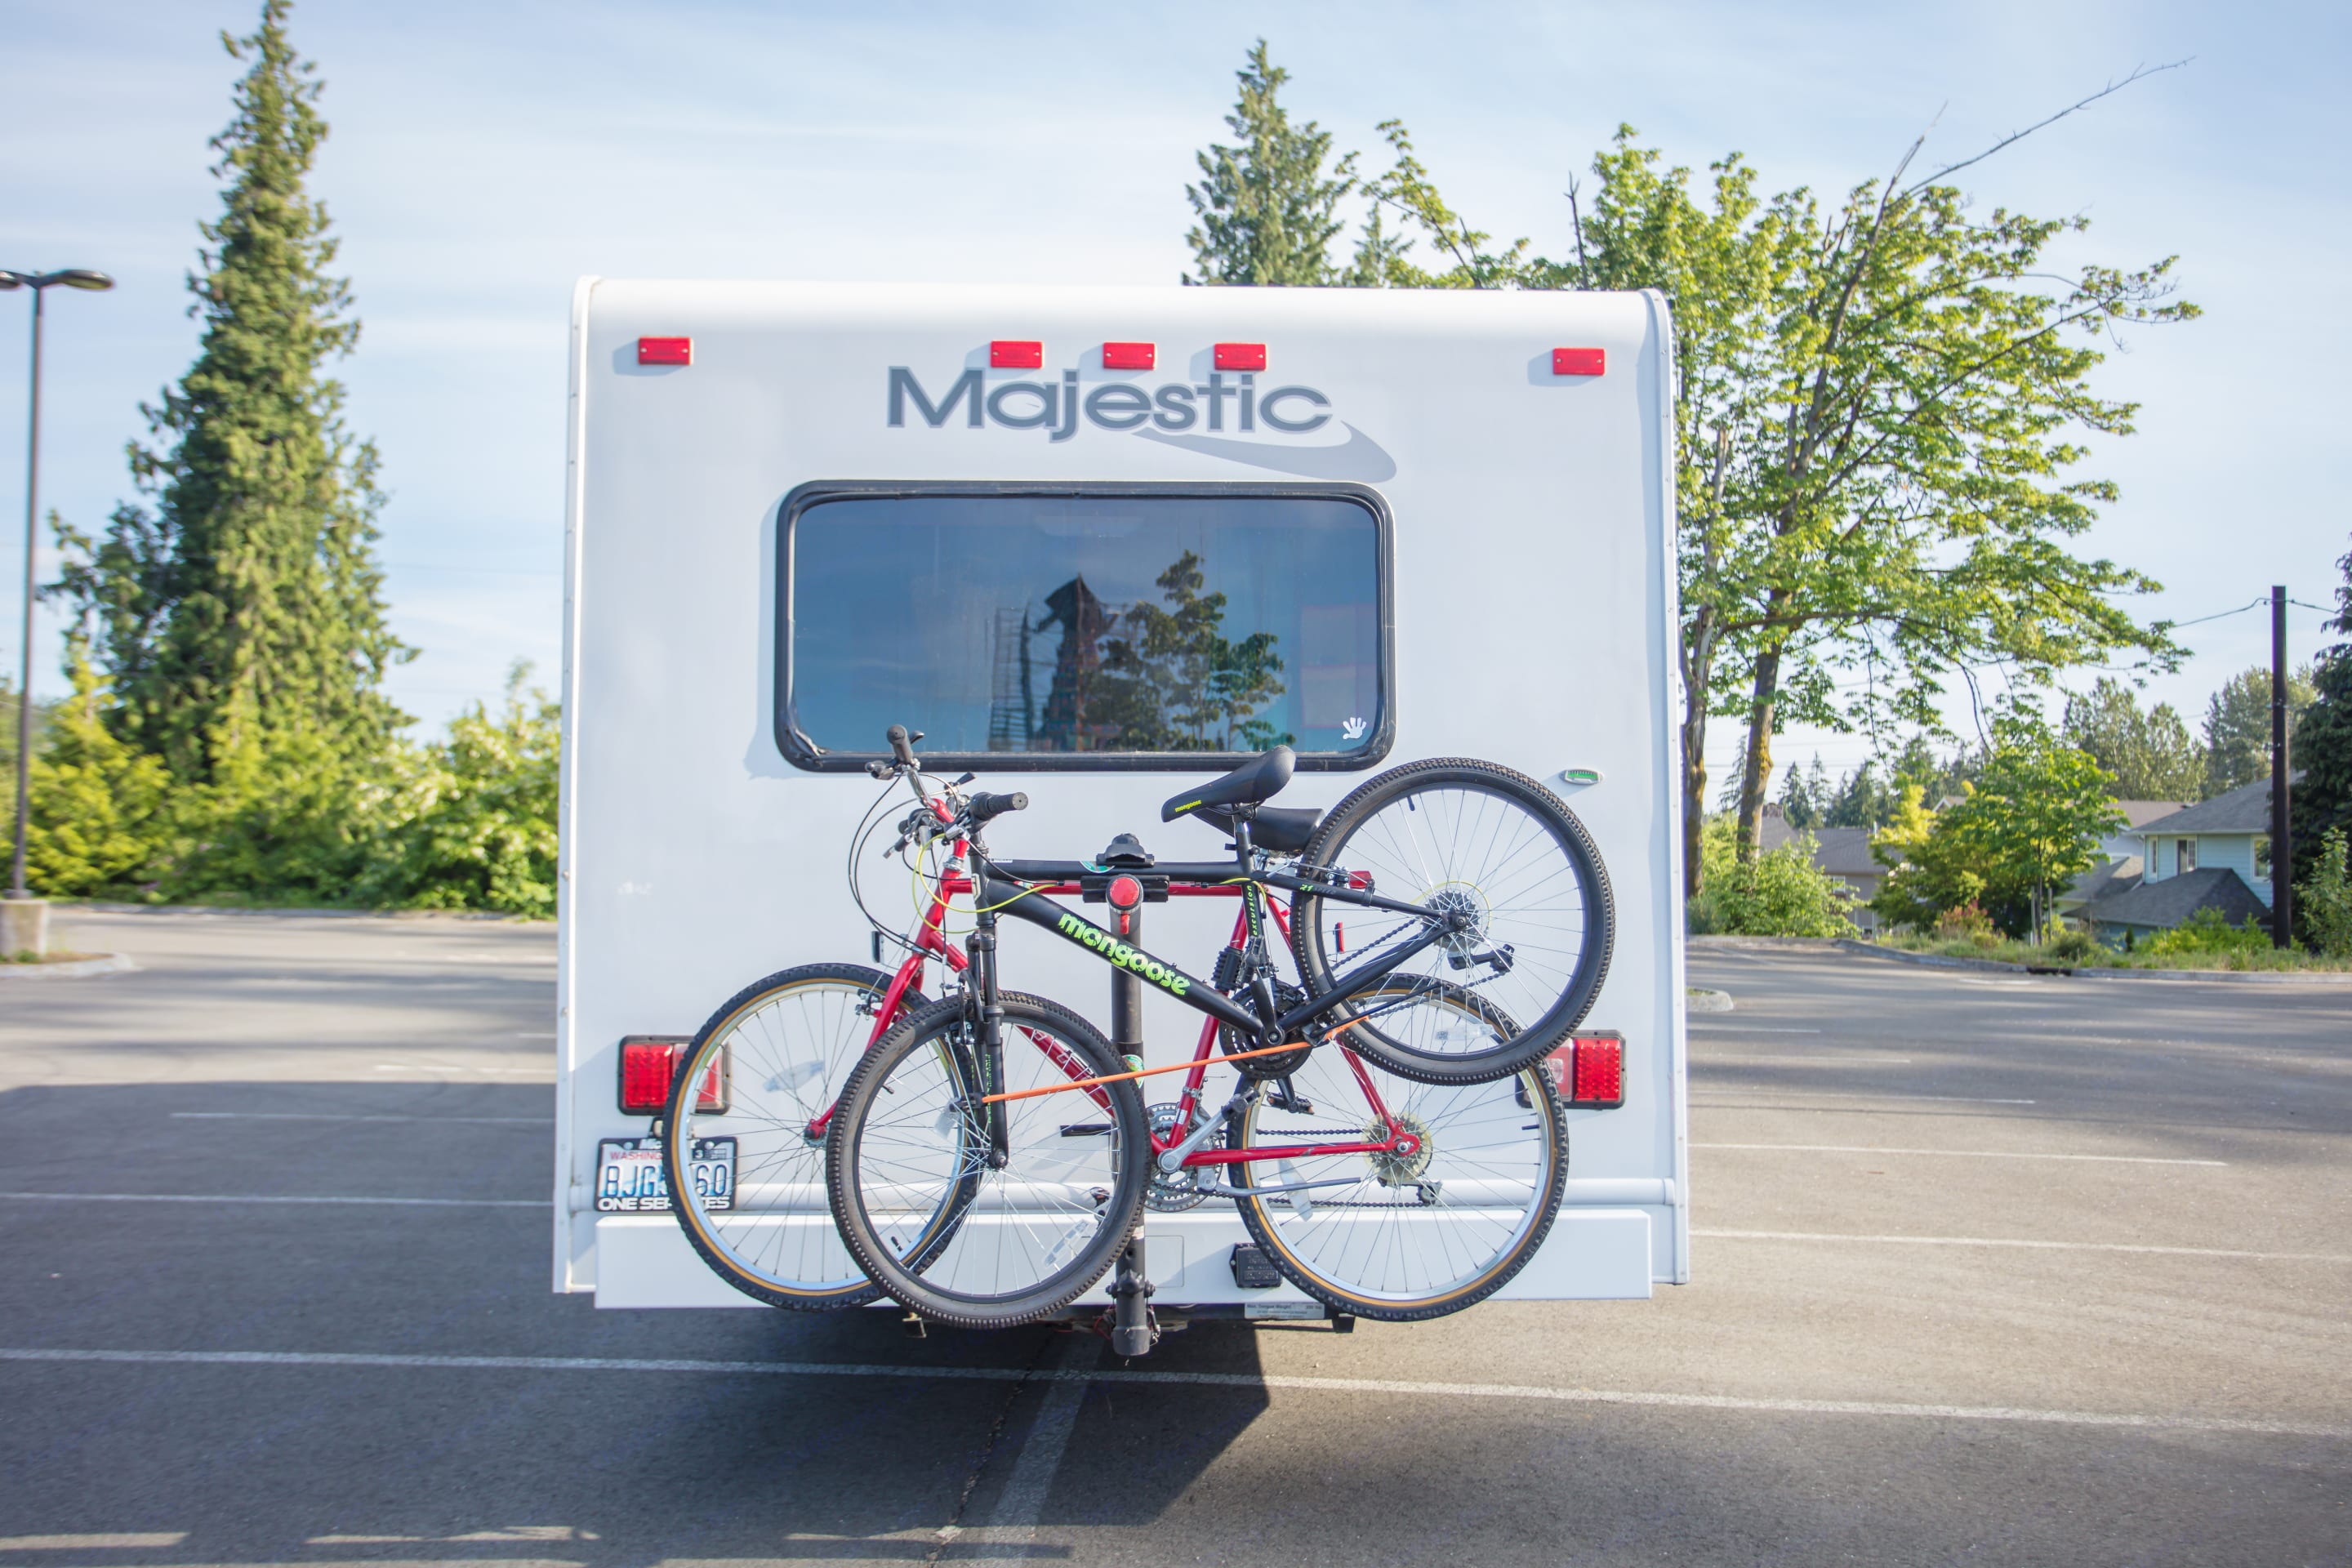 Back view - bike rack and bikes not included. Thor Motor Coach Four Winds Majestic 2007